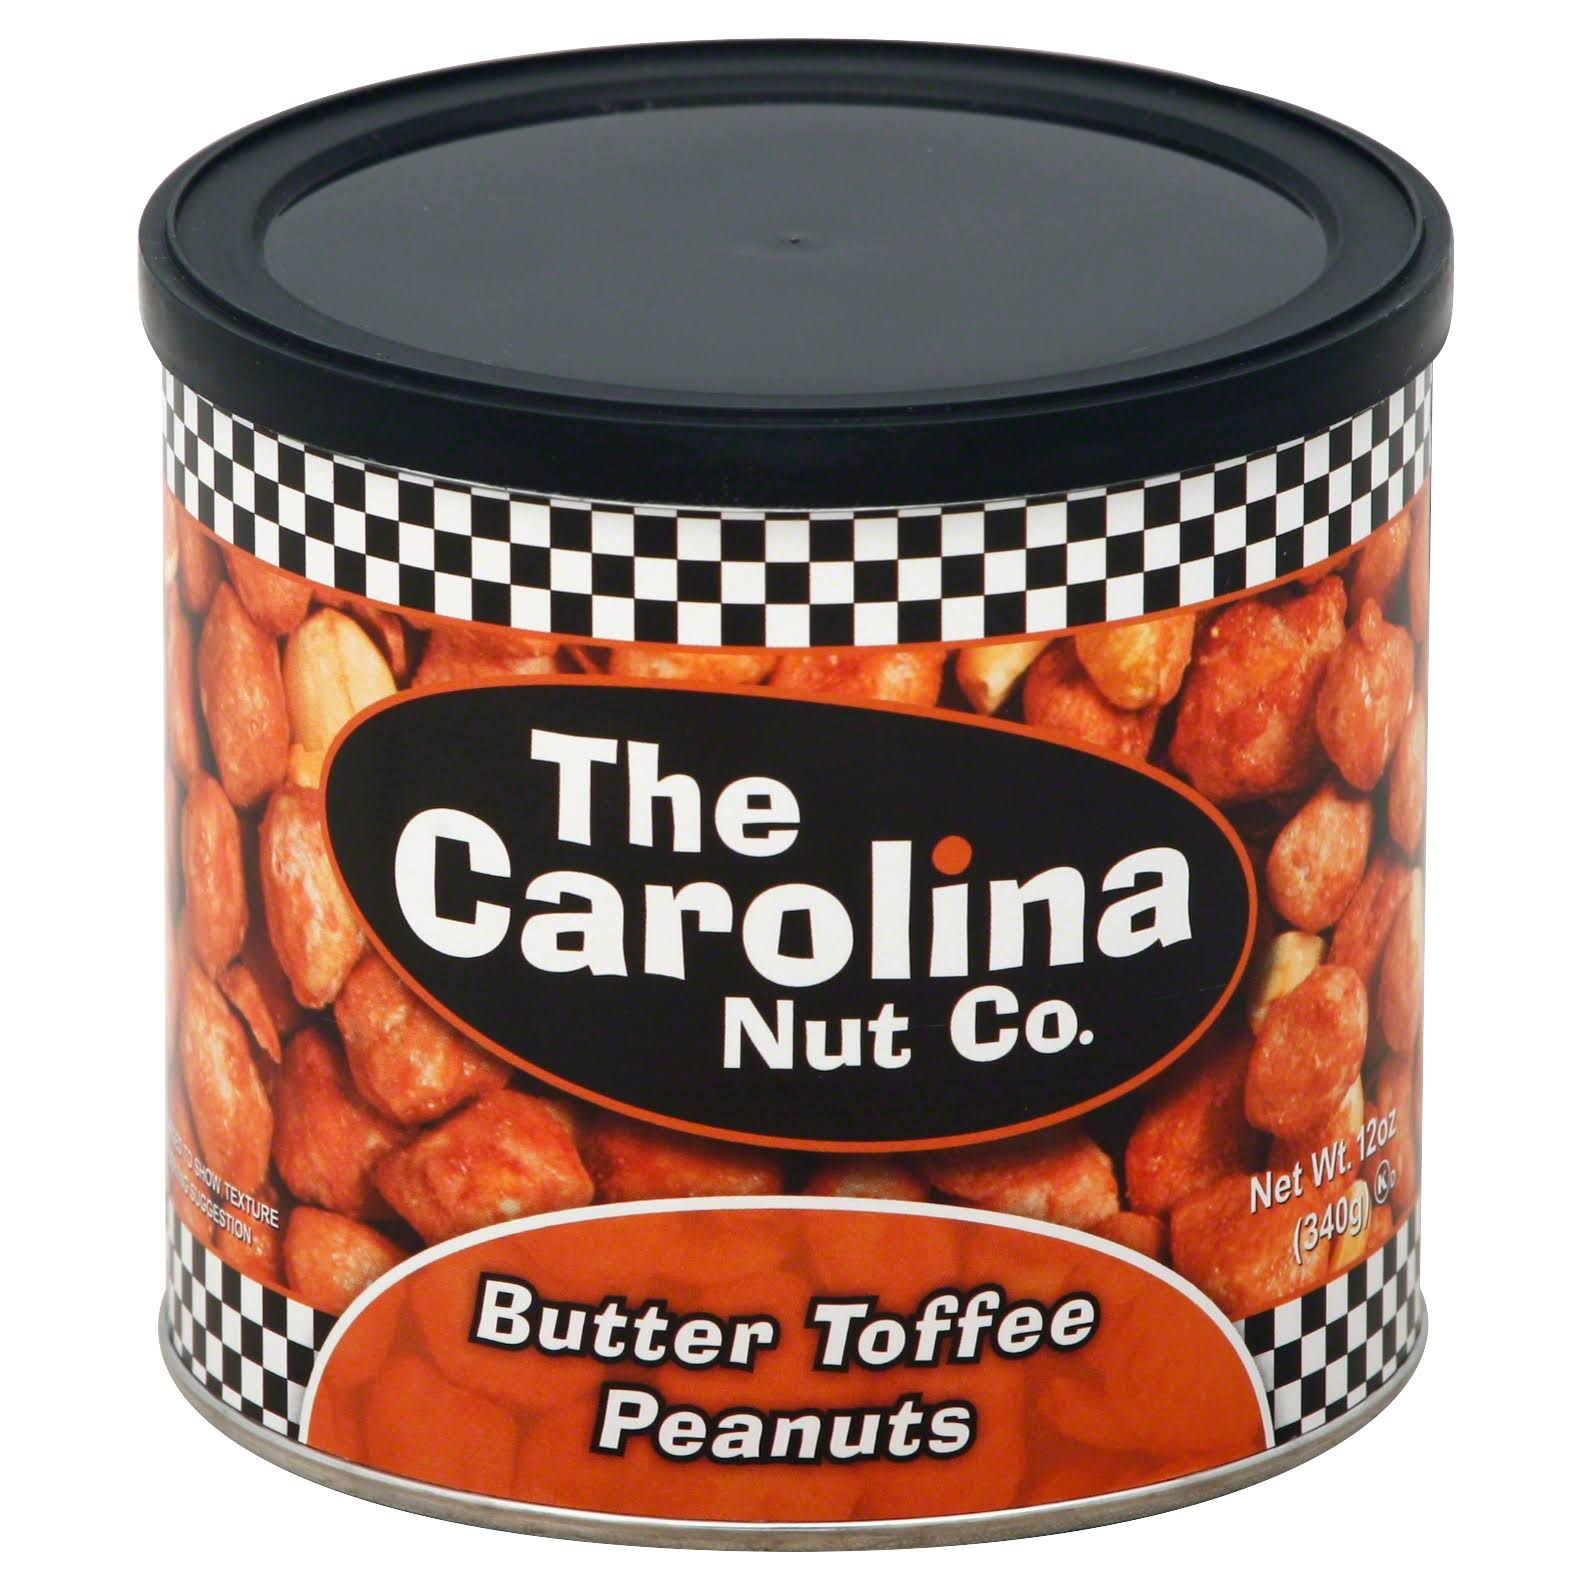 The Carolina Nut Company Butter Toffee Peanuts - 12oz